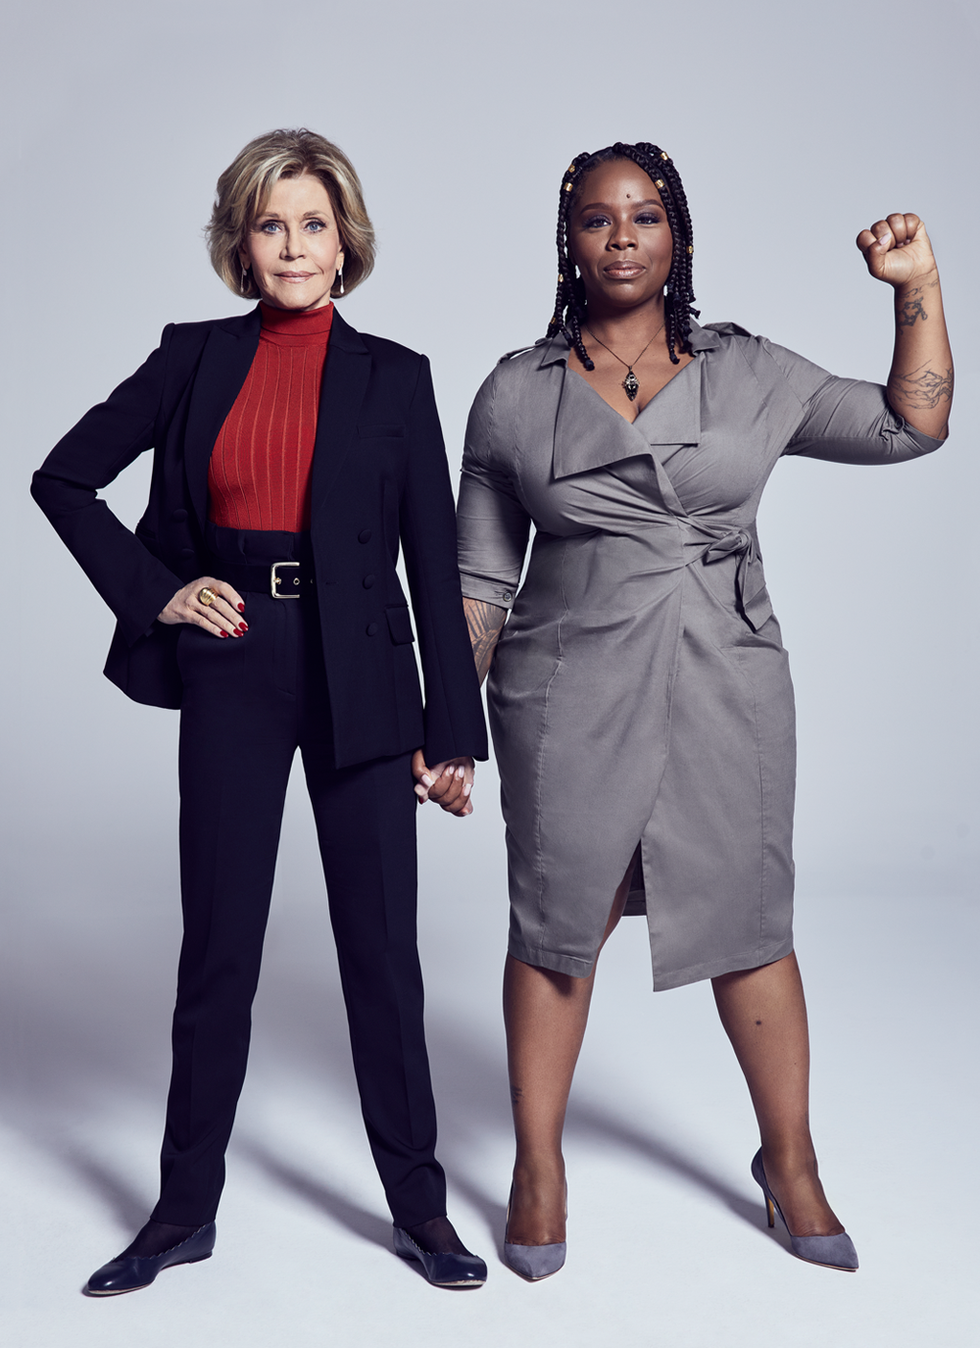 Jane Fonda and Patrisse Khan-Cullors on the Sobering Realities of Racism